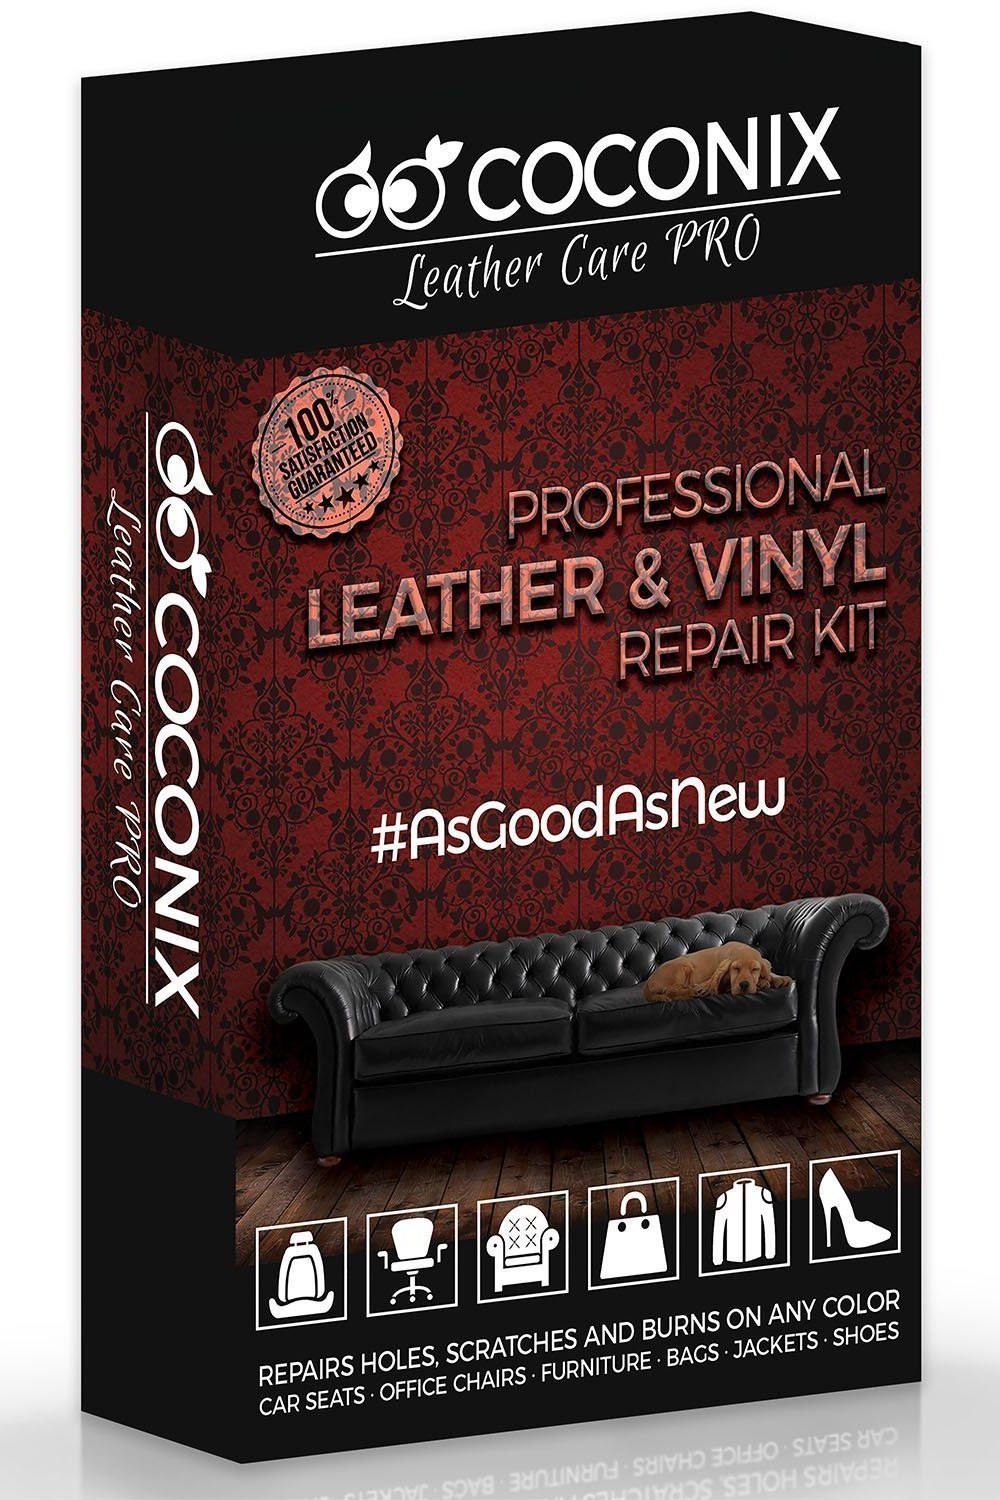 Top 10 Best Leather Couch Repair Kits Trust Reviewz